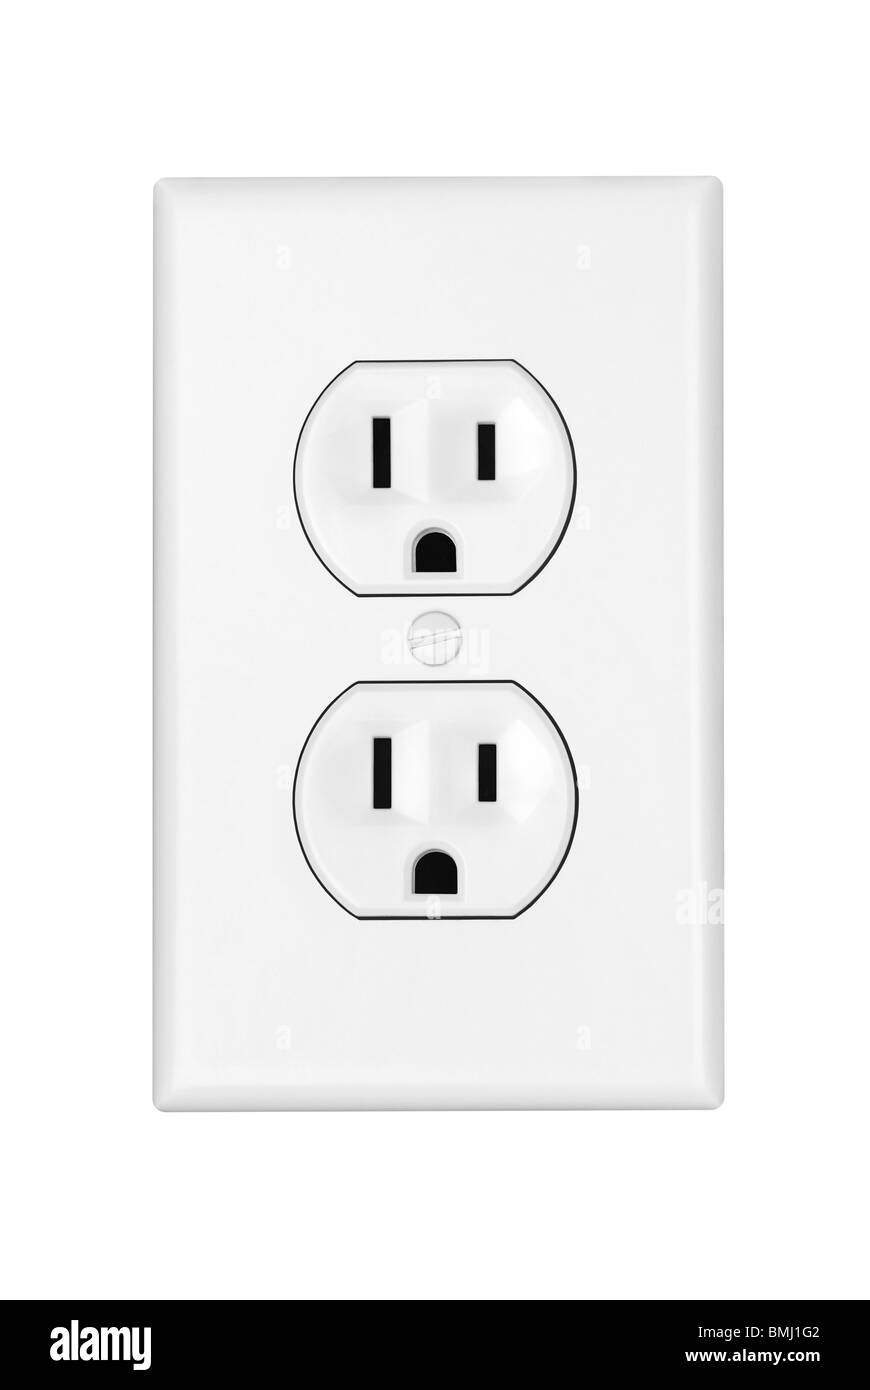 An American 110 volt three prong electrical power outlet isolated on white. - Stock Image